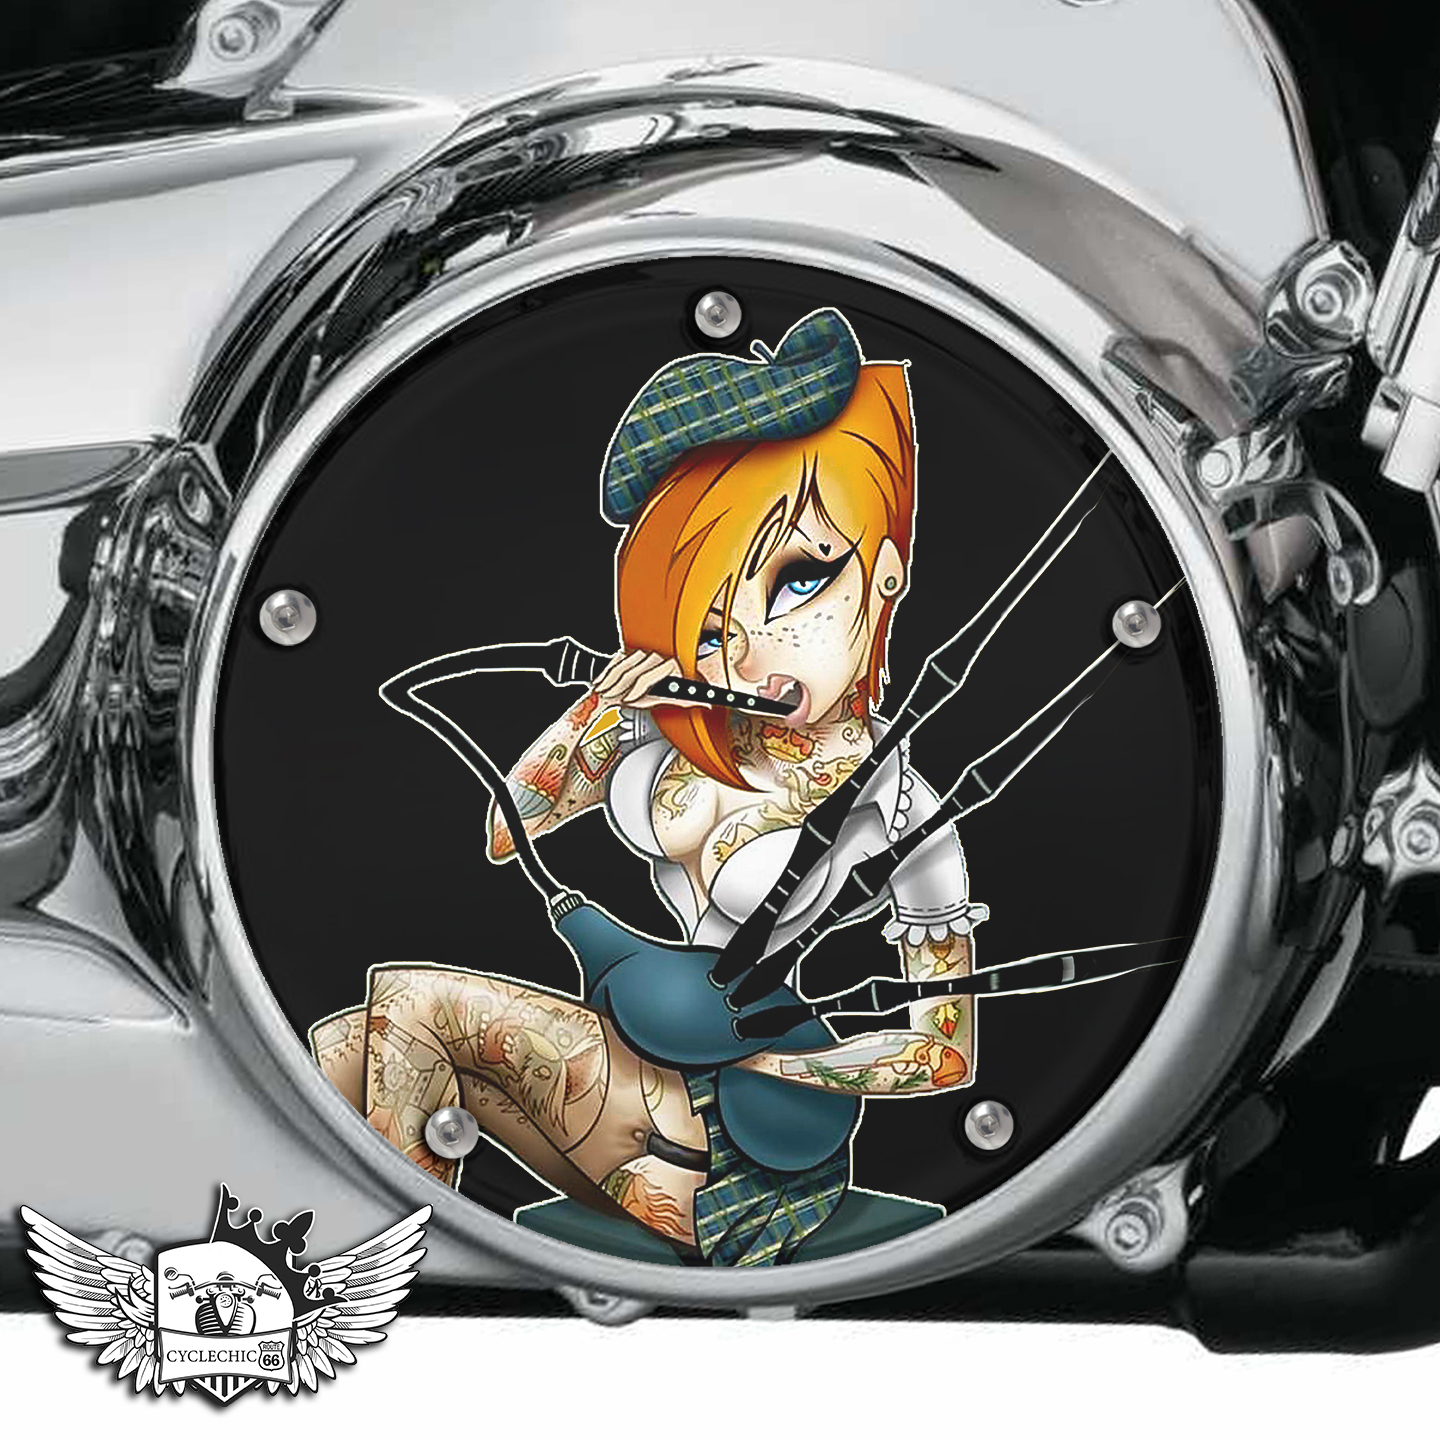 Harley Davidson Derby/Clutch Cover - Bagpipe, Pin-up